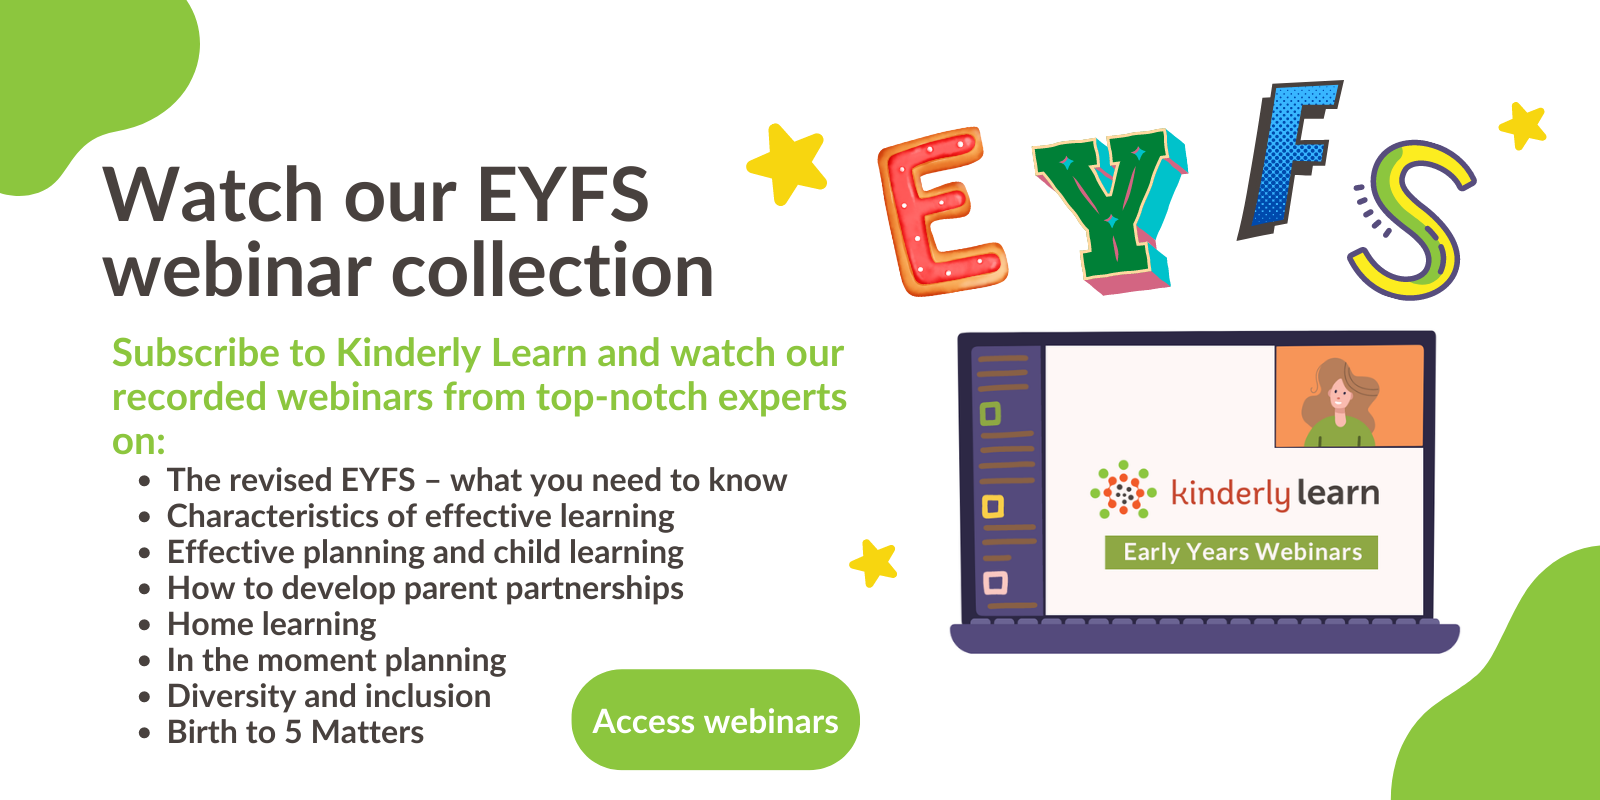 graphic explaining kinderly's eyfs webinar collection